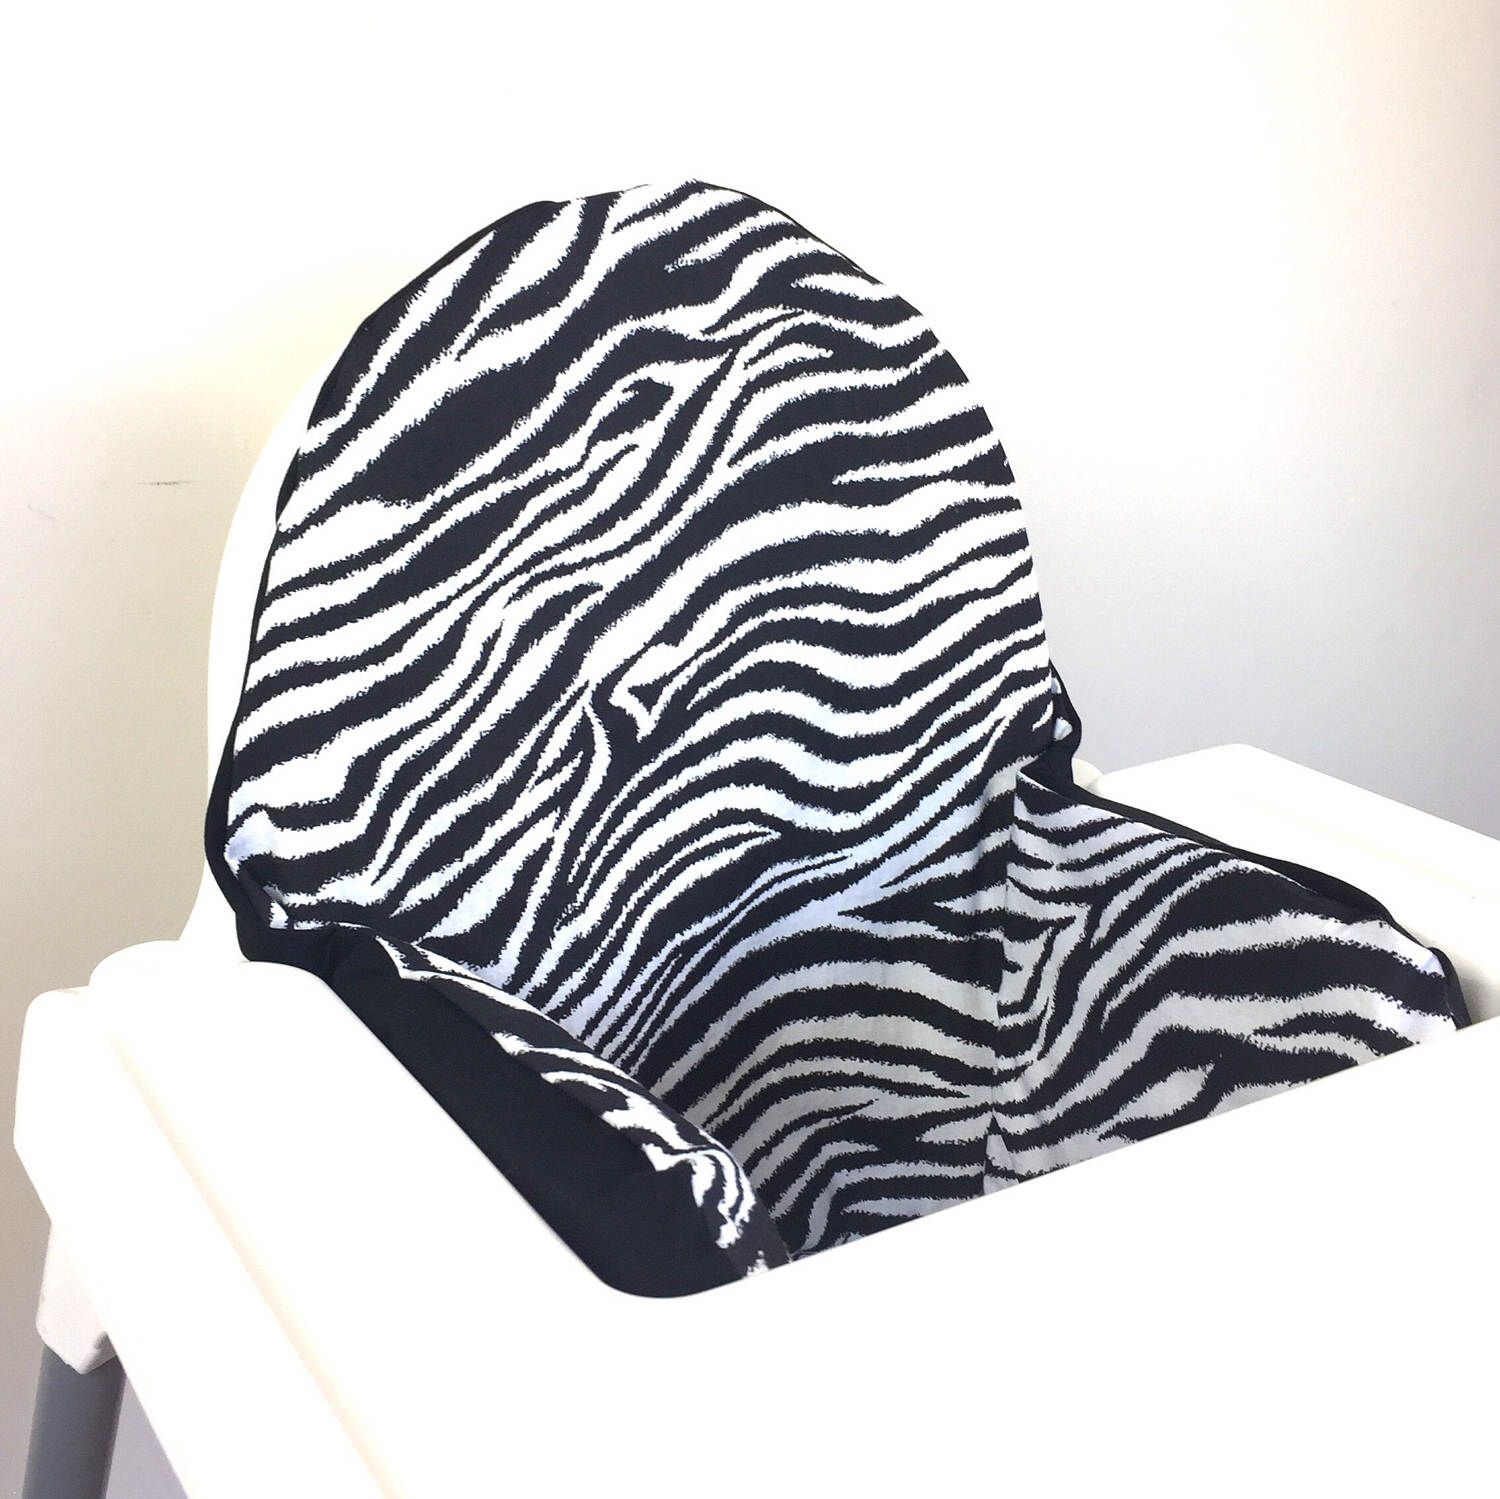 Zebra print IKEA Antilop pyttig High Chair Cushion Cover